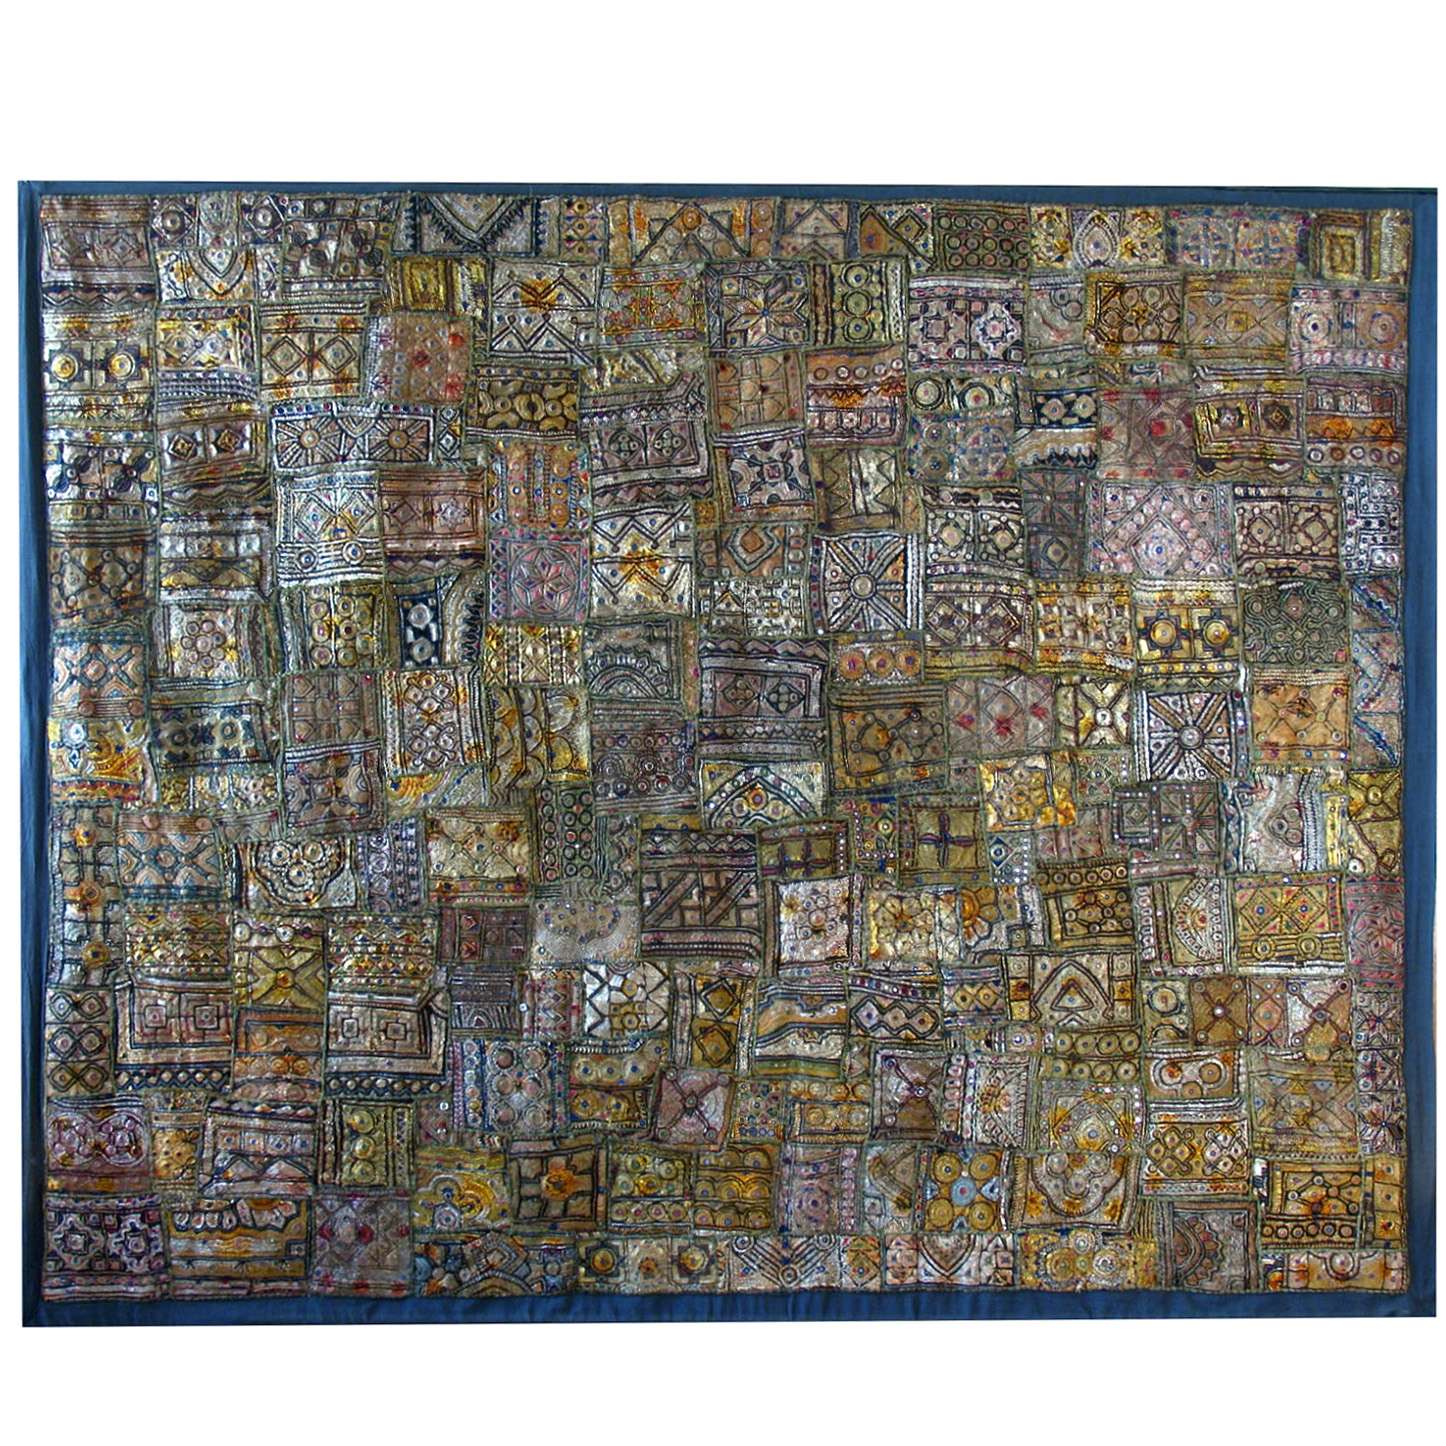 UH80026: Rajasthani Patchwork Tapestry